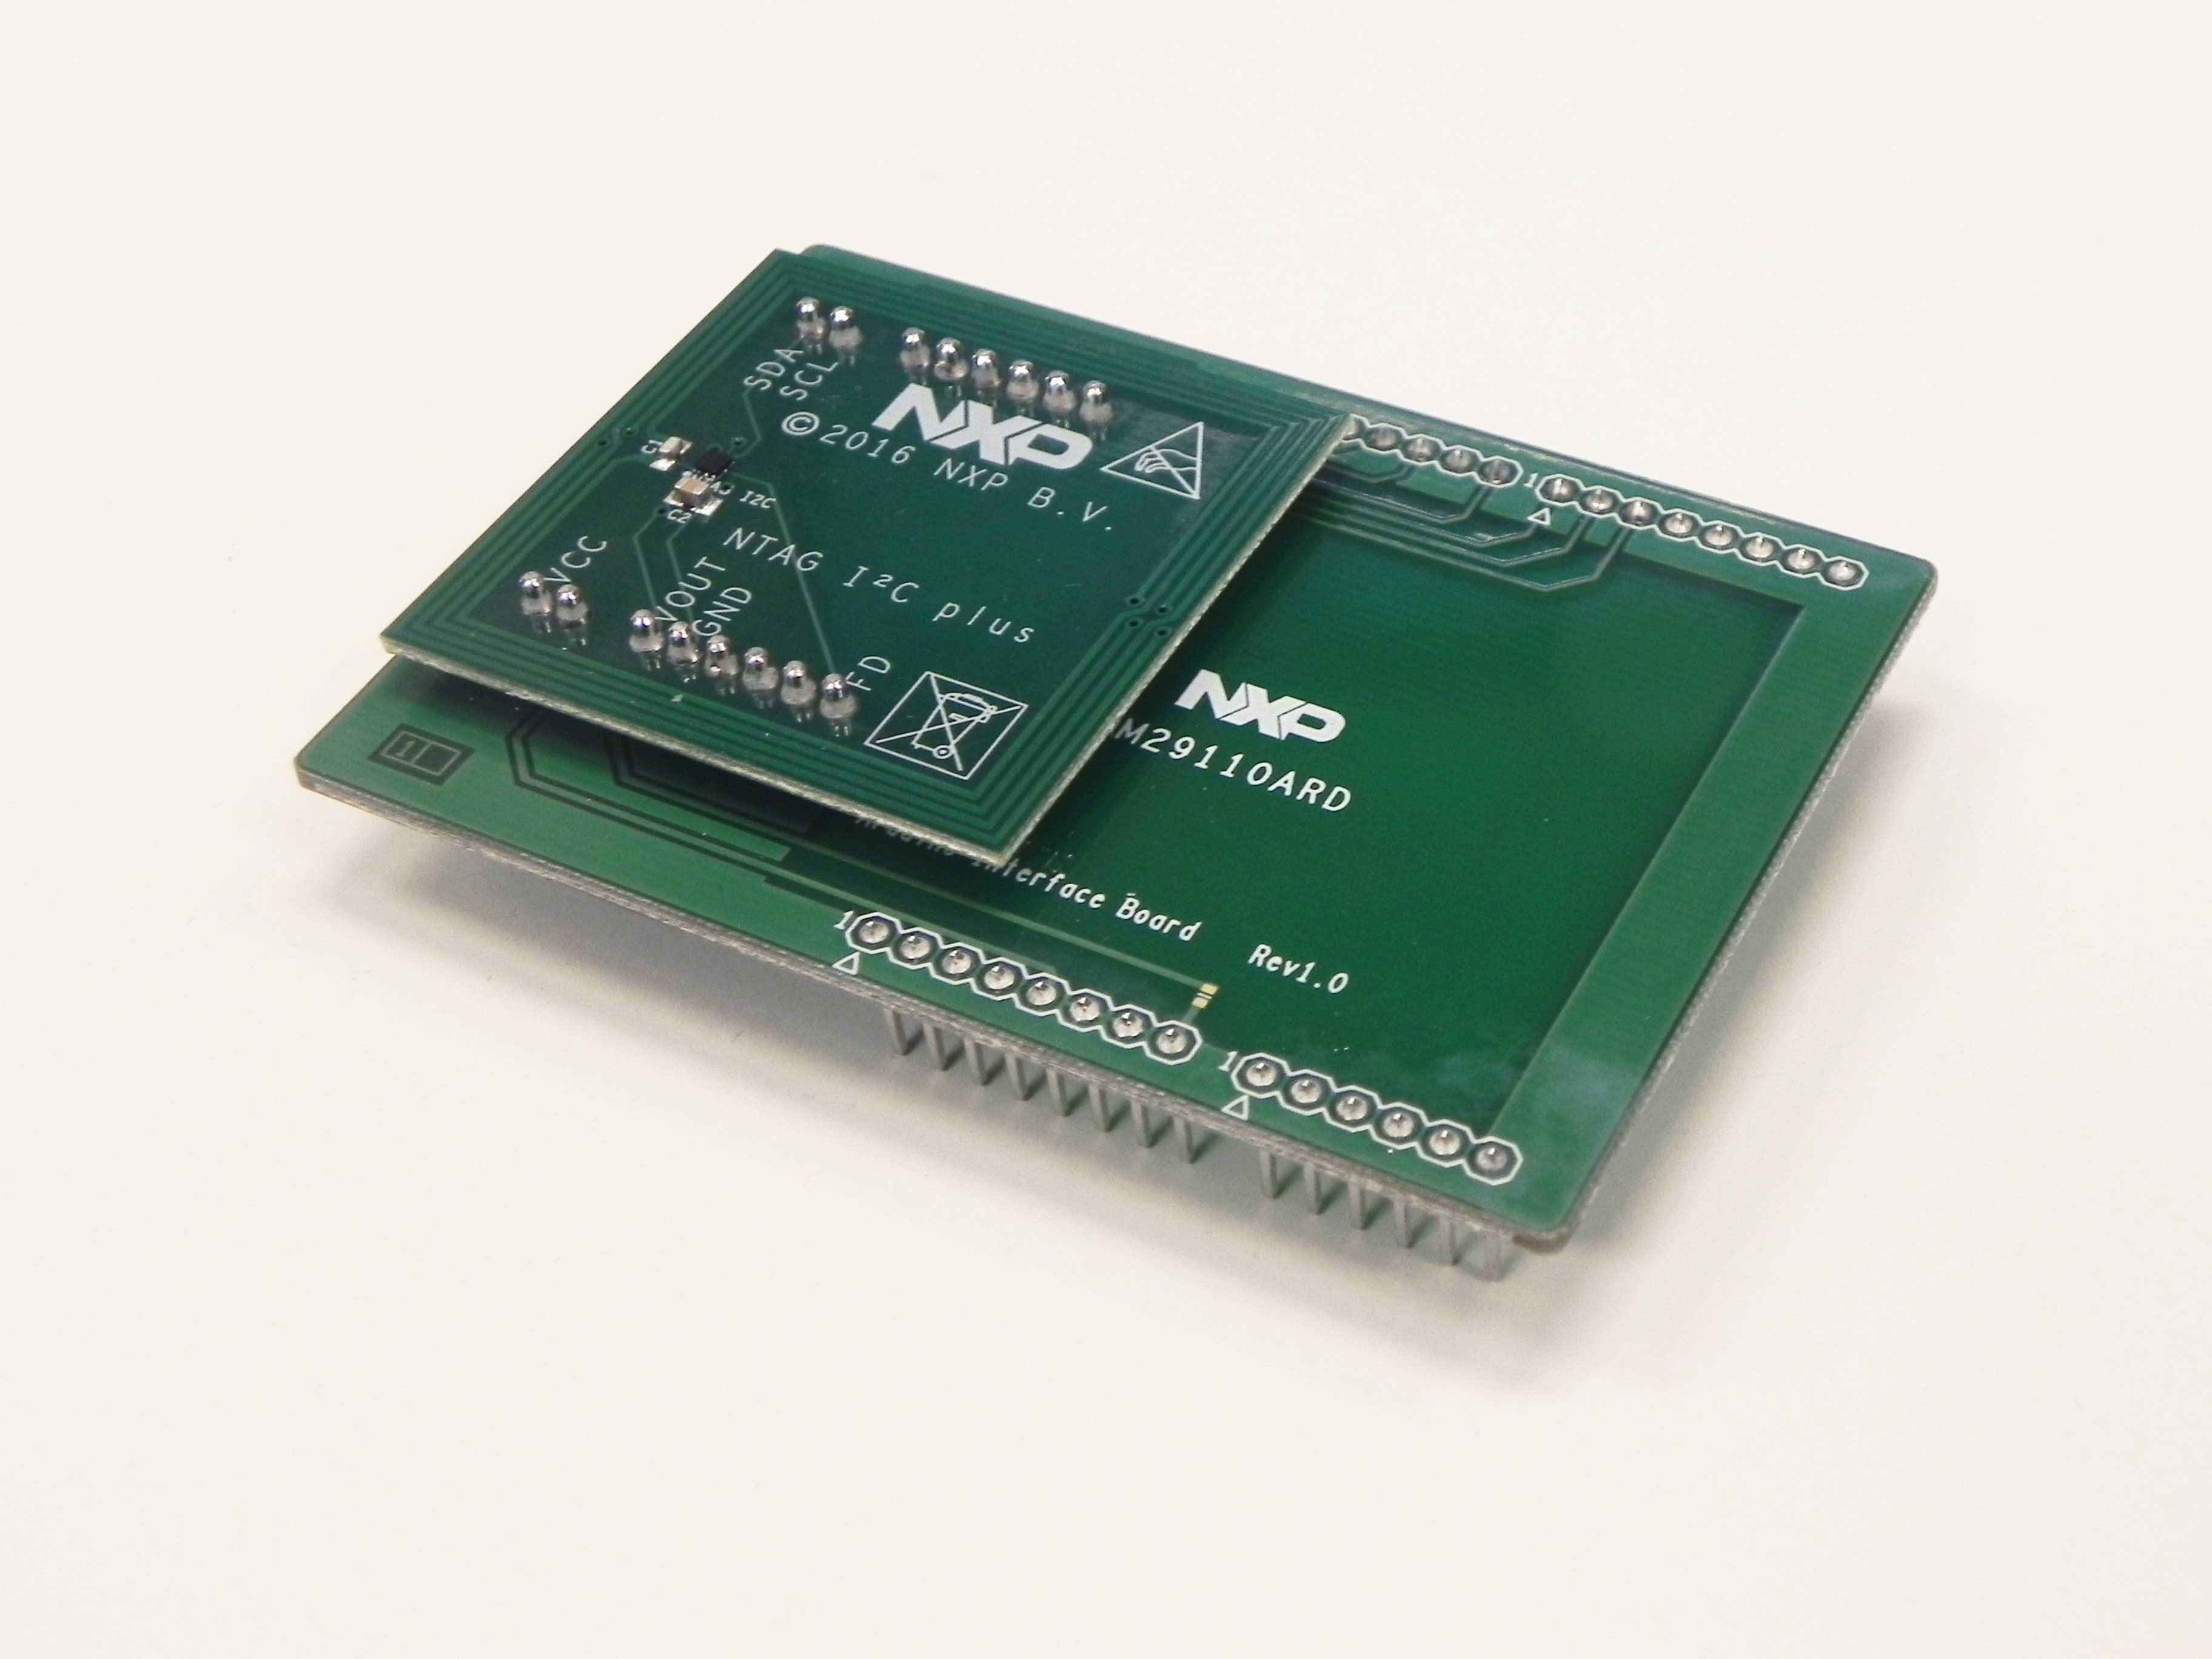 NTAG I2C plus kit for Arduino® pinout